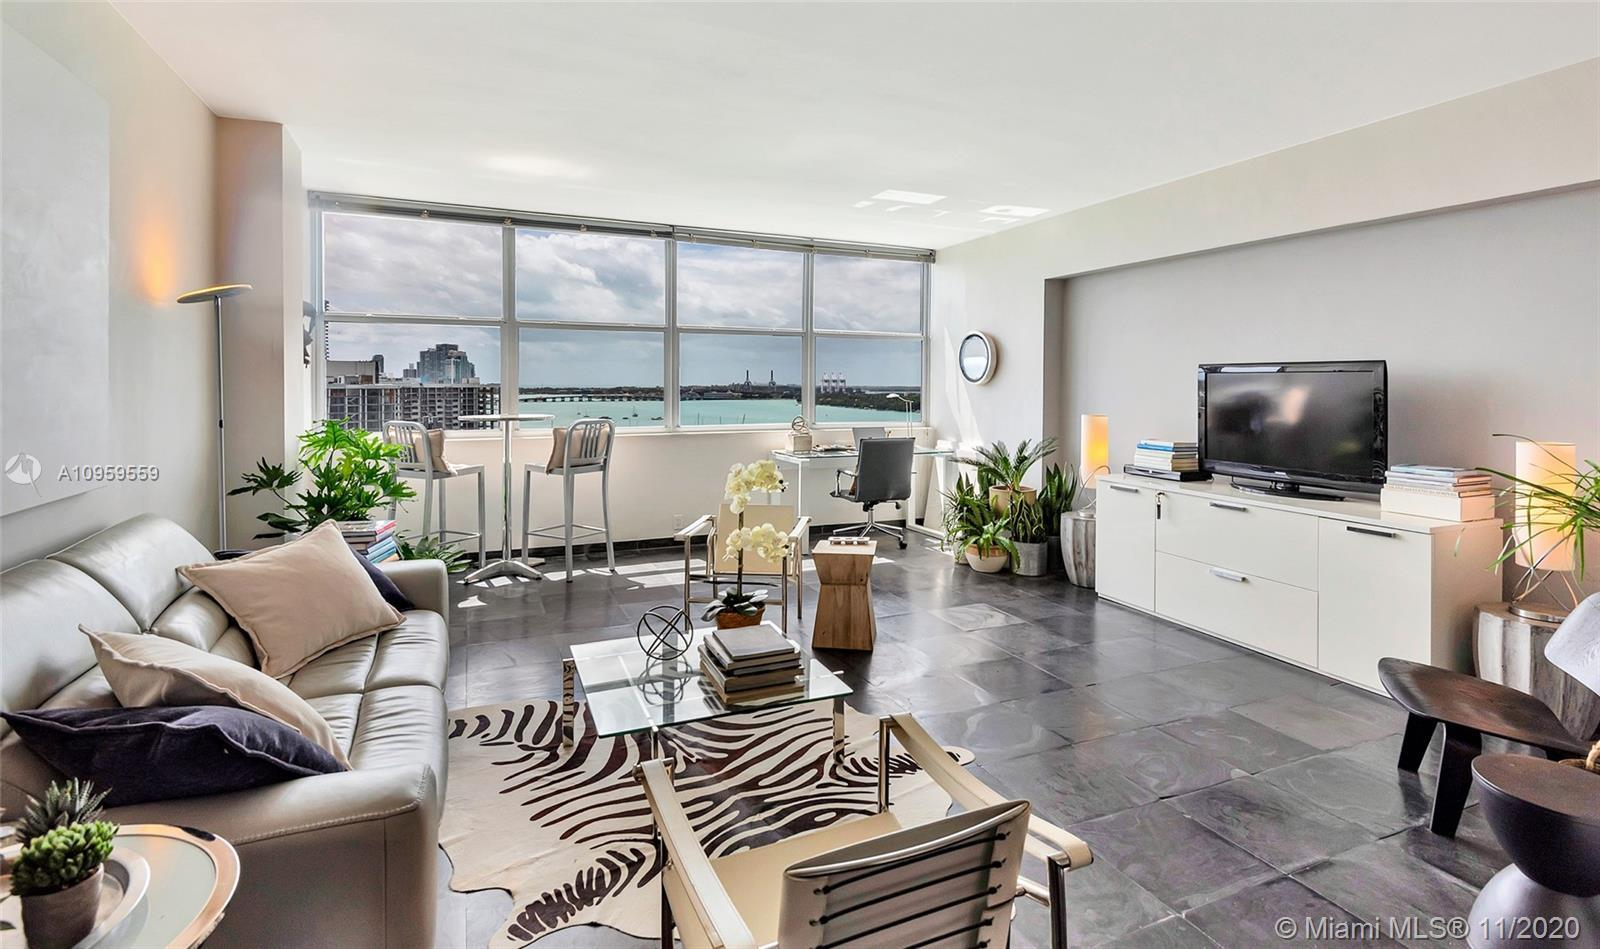 Best studio on Belle Isle! Top floor, wall of windows provide full bay and ocean views from Lincoln